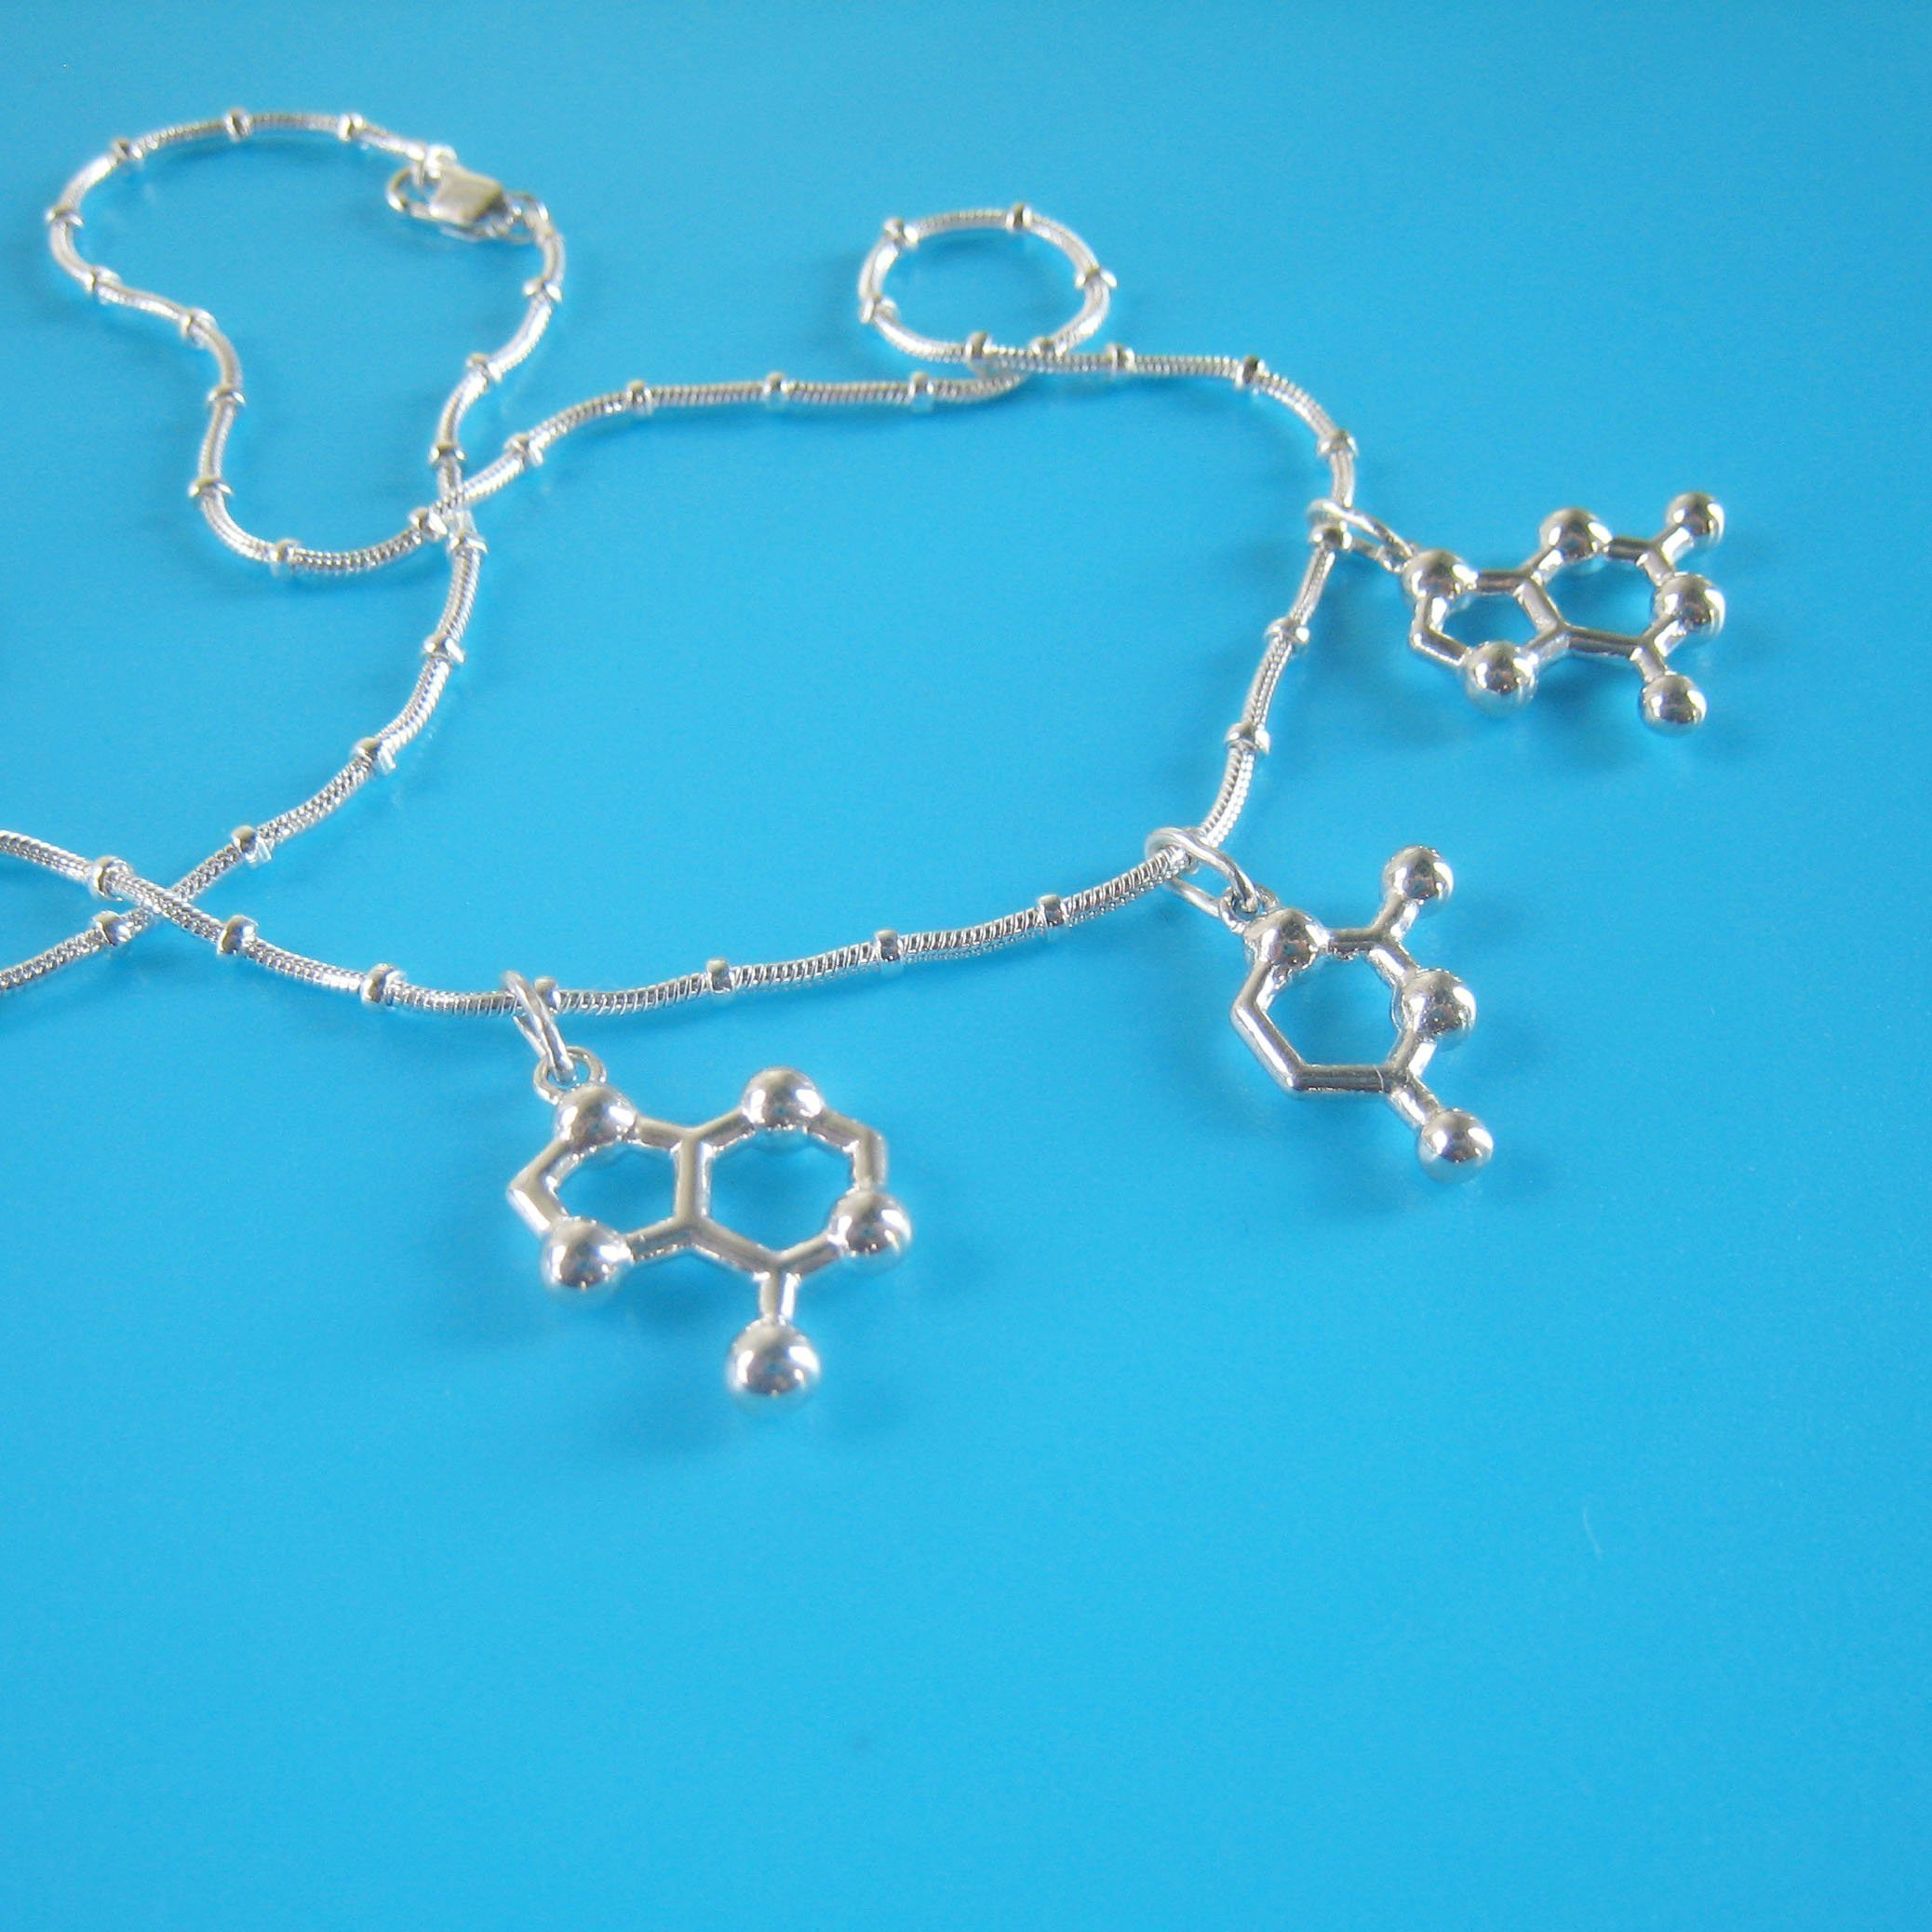 AUG Start Codon DNA Necklace in sterling silver